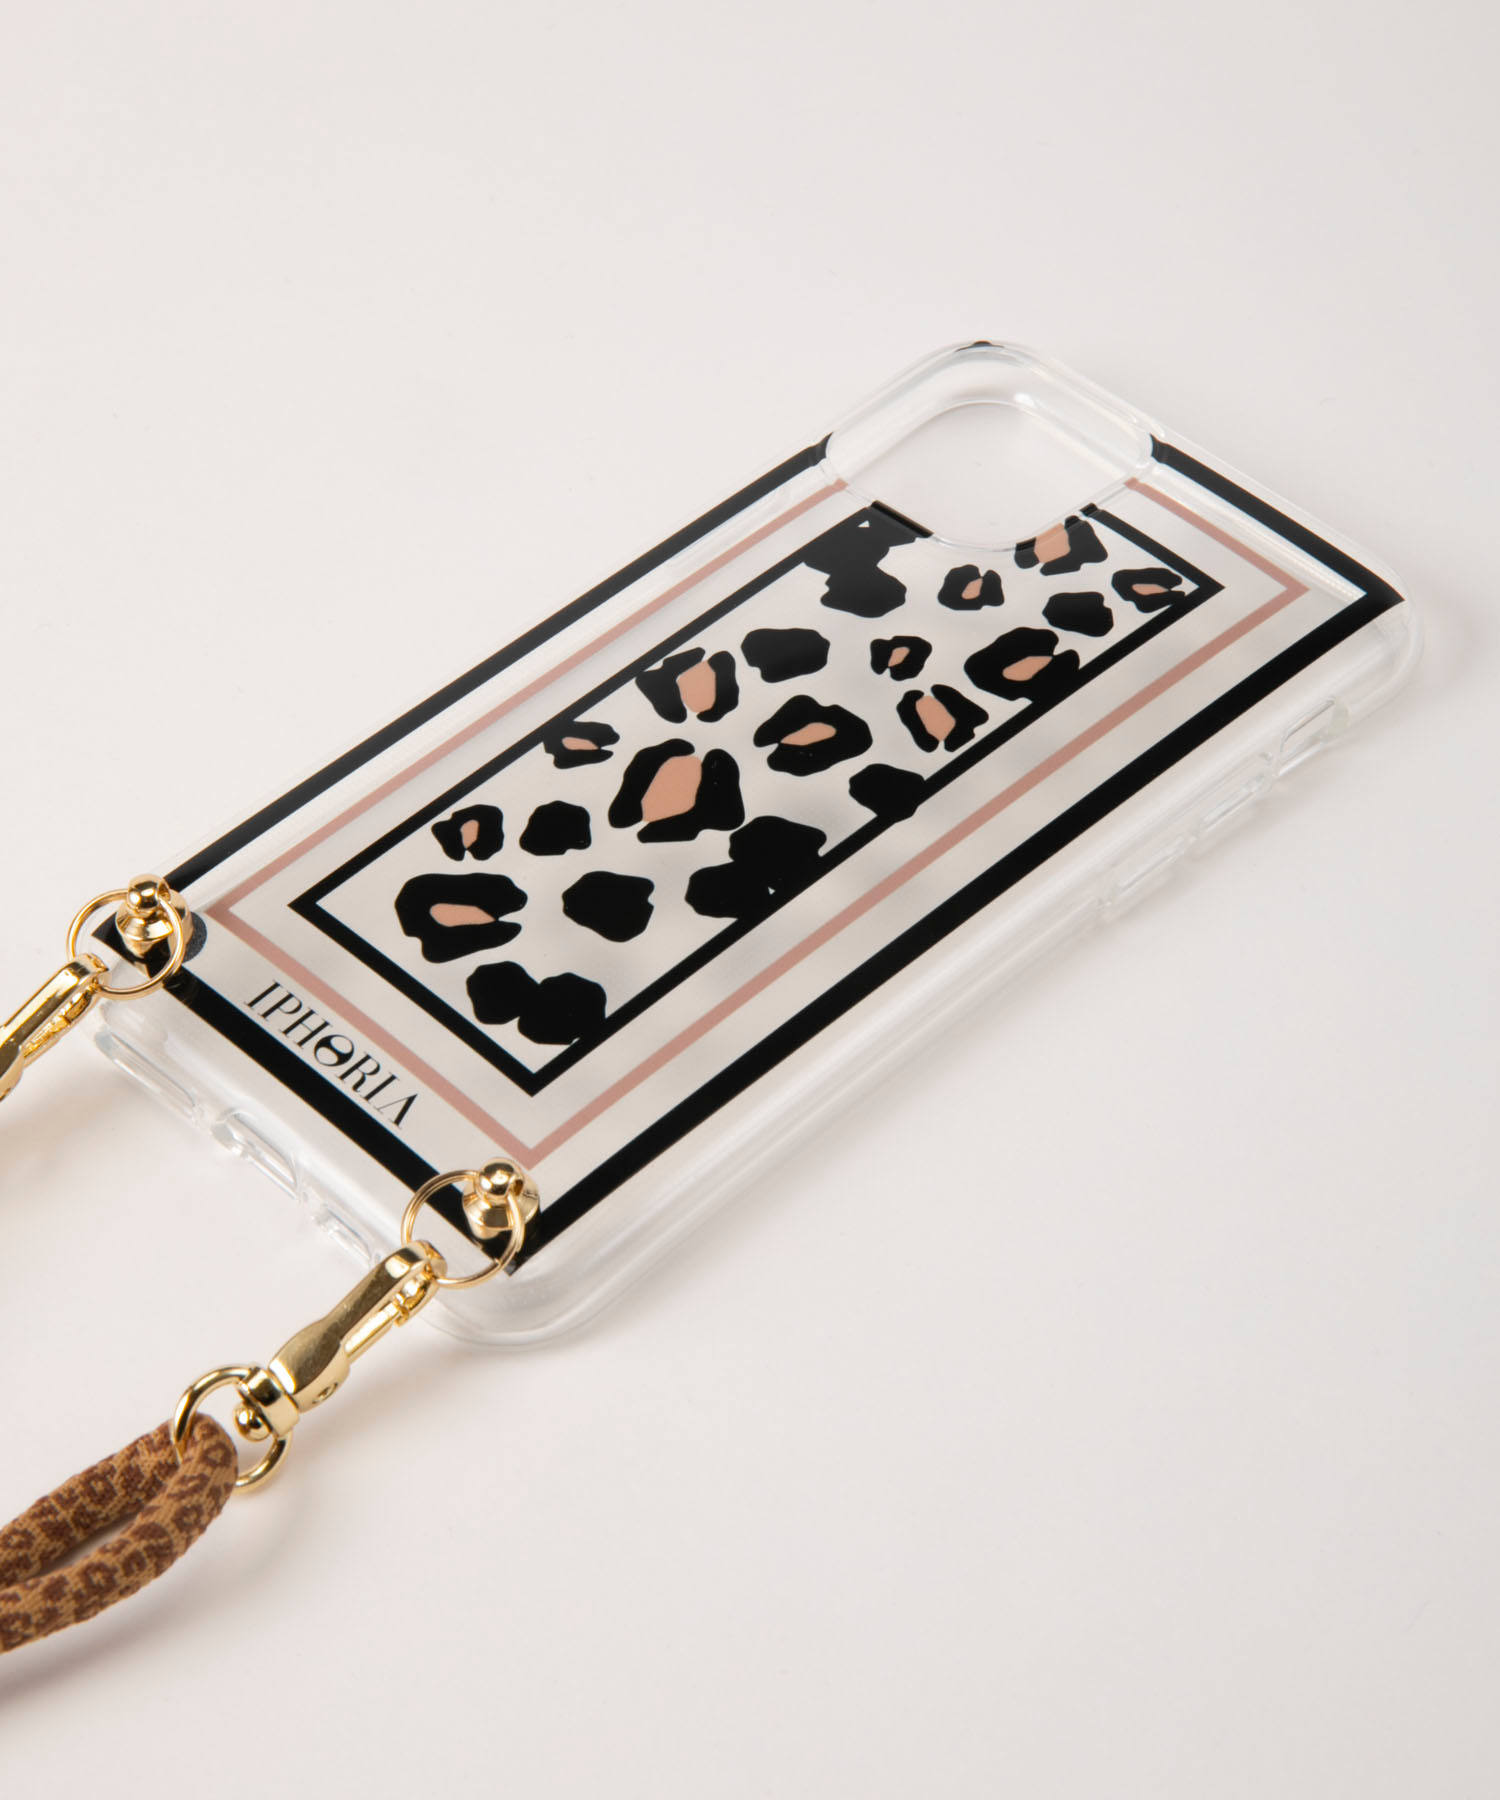 Necklace Case for Apple iPhone 11 Pro - Transparent Leo